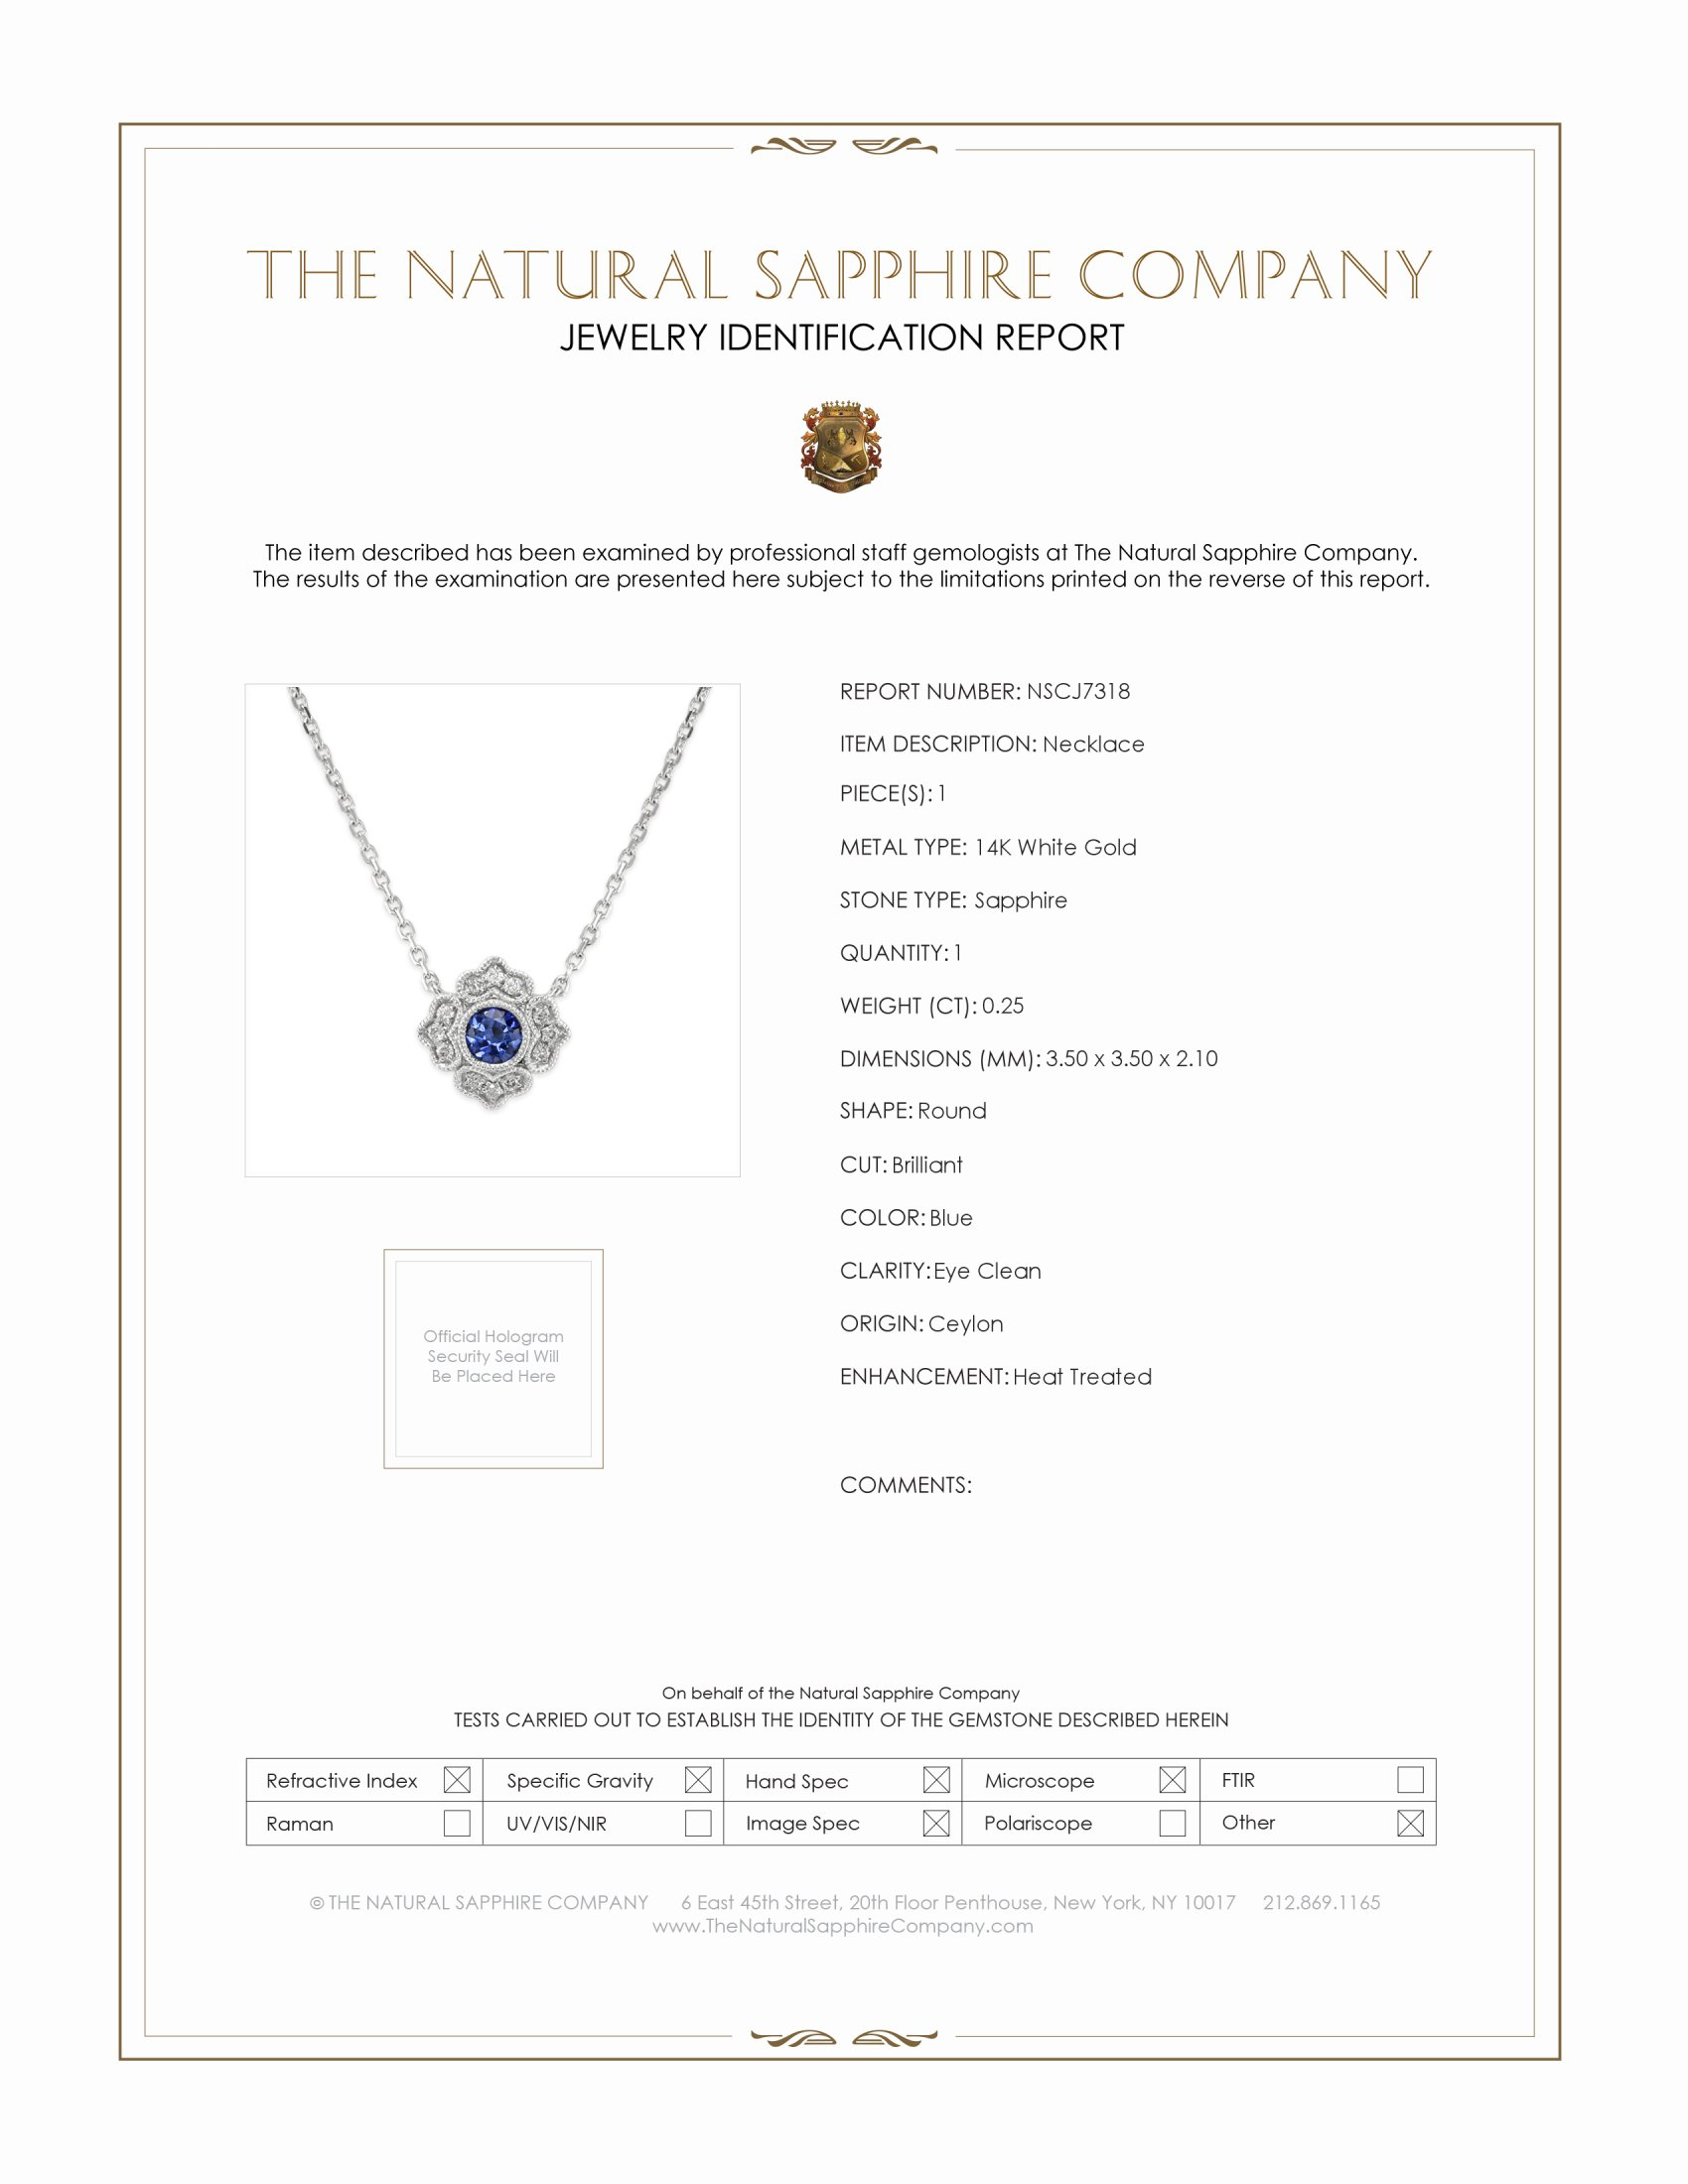 0.25ct Blue Sapphire Necklace Certification